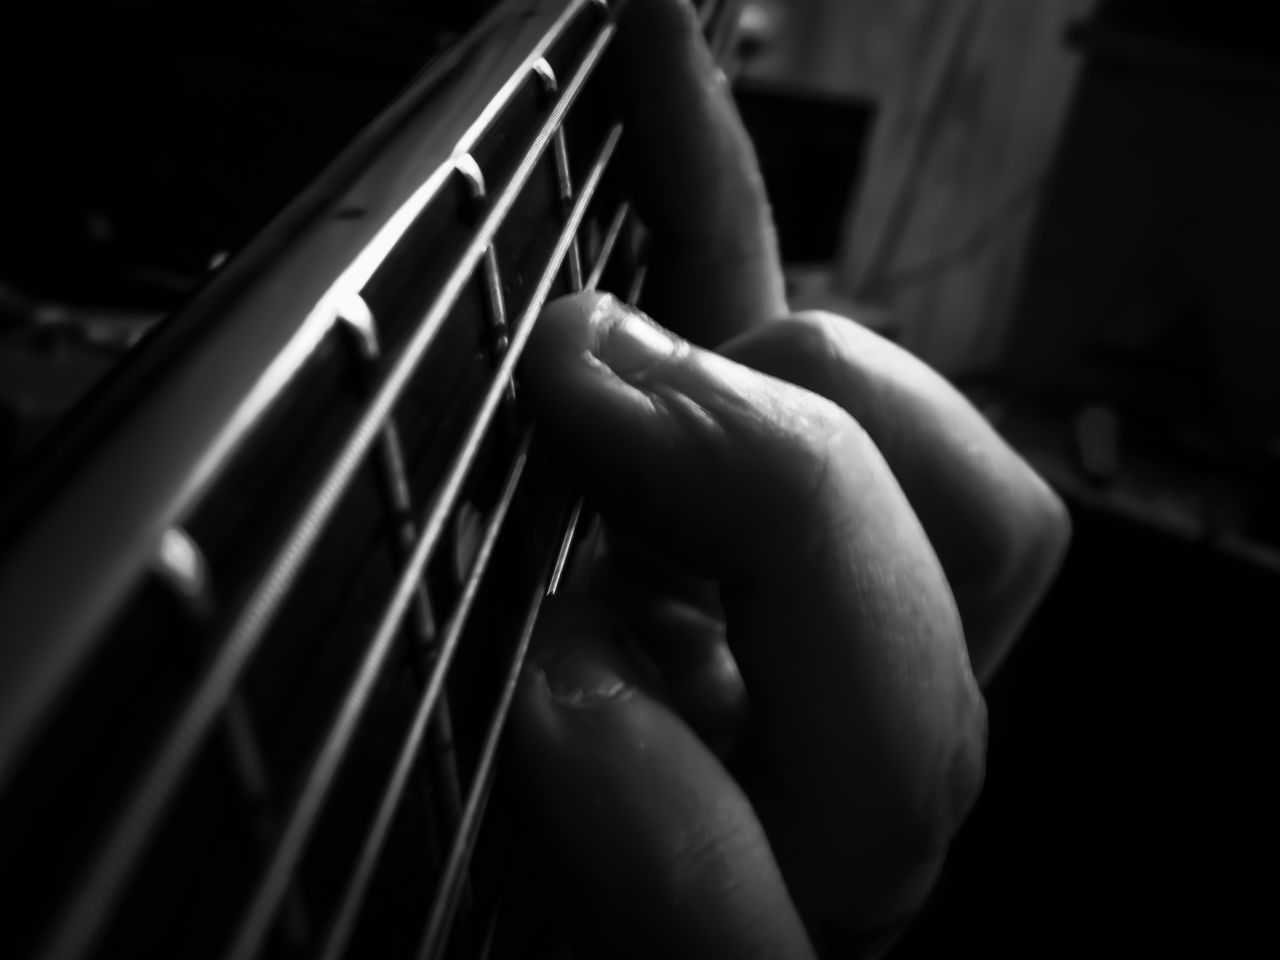 till my fingers bleed Adult Adults Only Arts Culture And Entertainment Close-up Day Fretboard Guitar Human Body Part Human Hand Indoors  Music Musical Instrument Musical Instrument String One Person People Playing Playing By Heart Real People TakeoverMusic